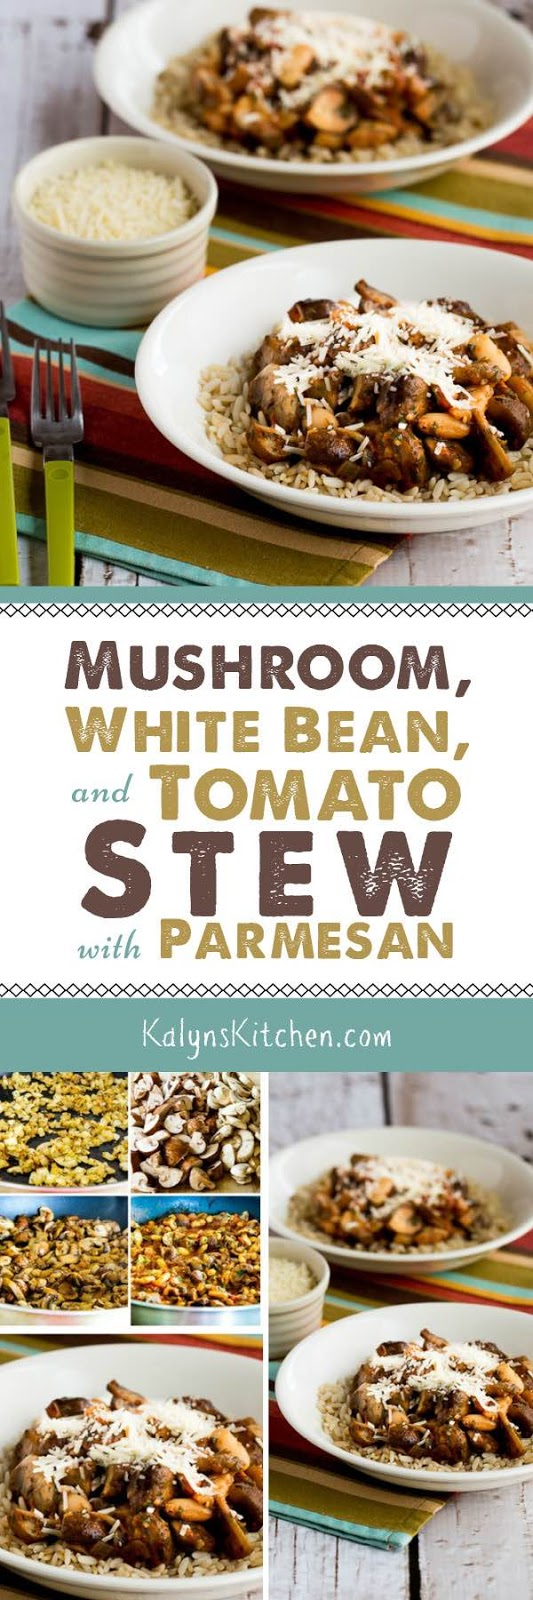 Mushroom, White Bean, and Tomato Stew with Parmesan ...